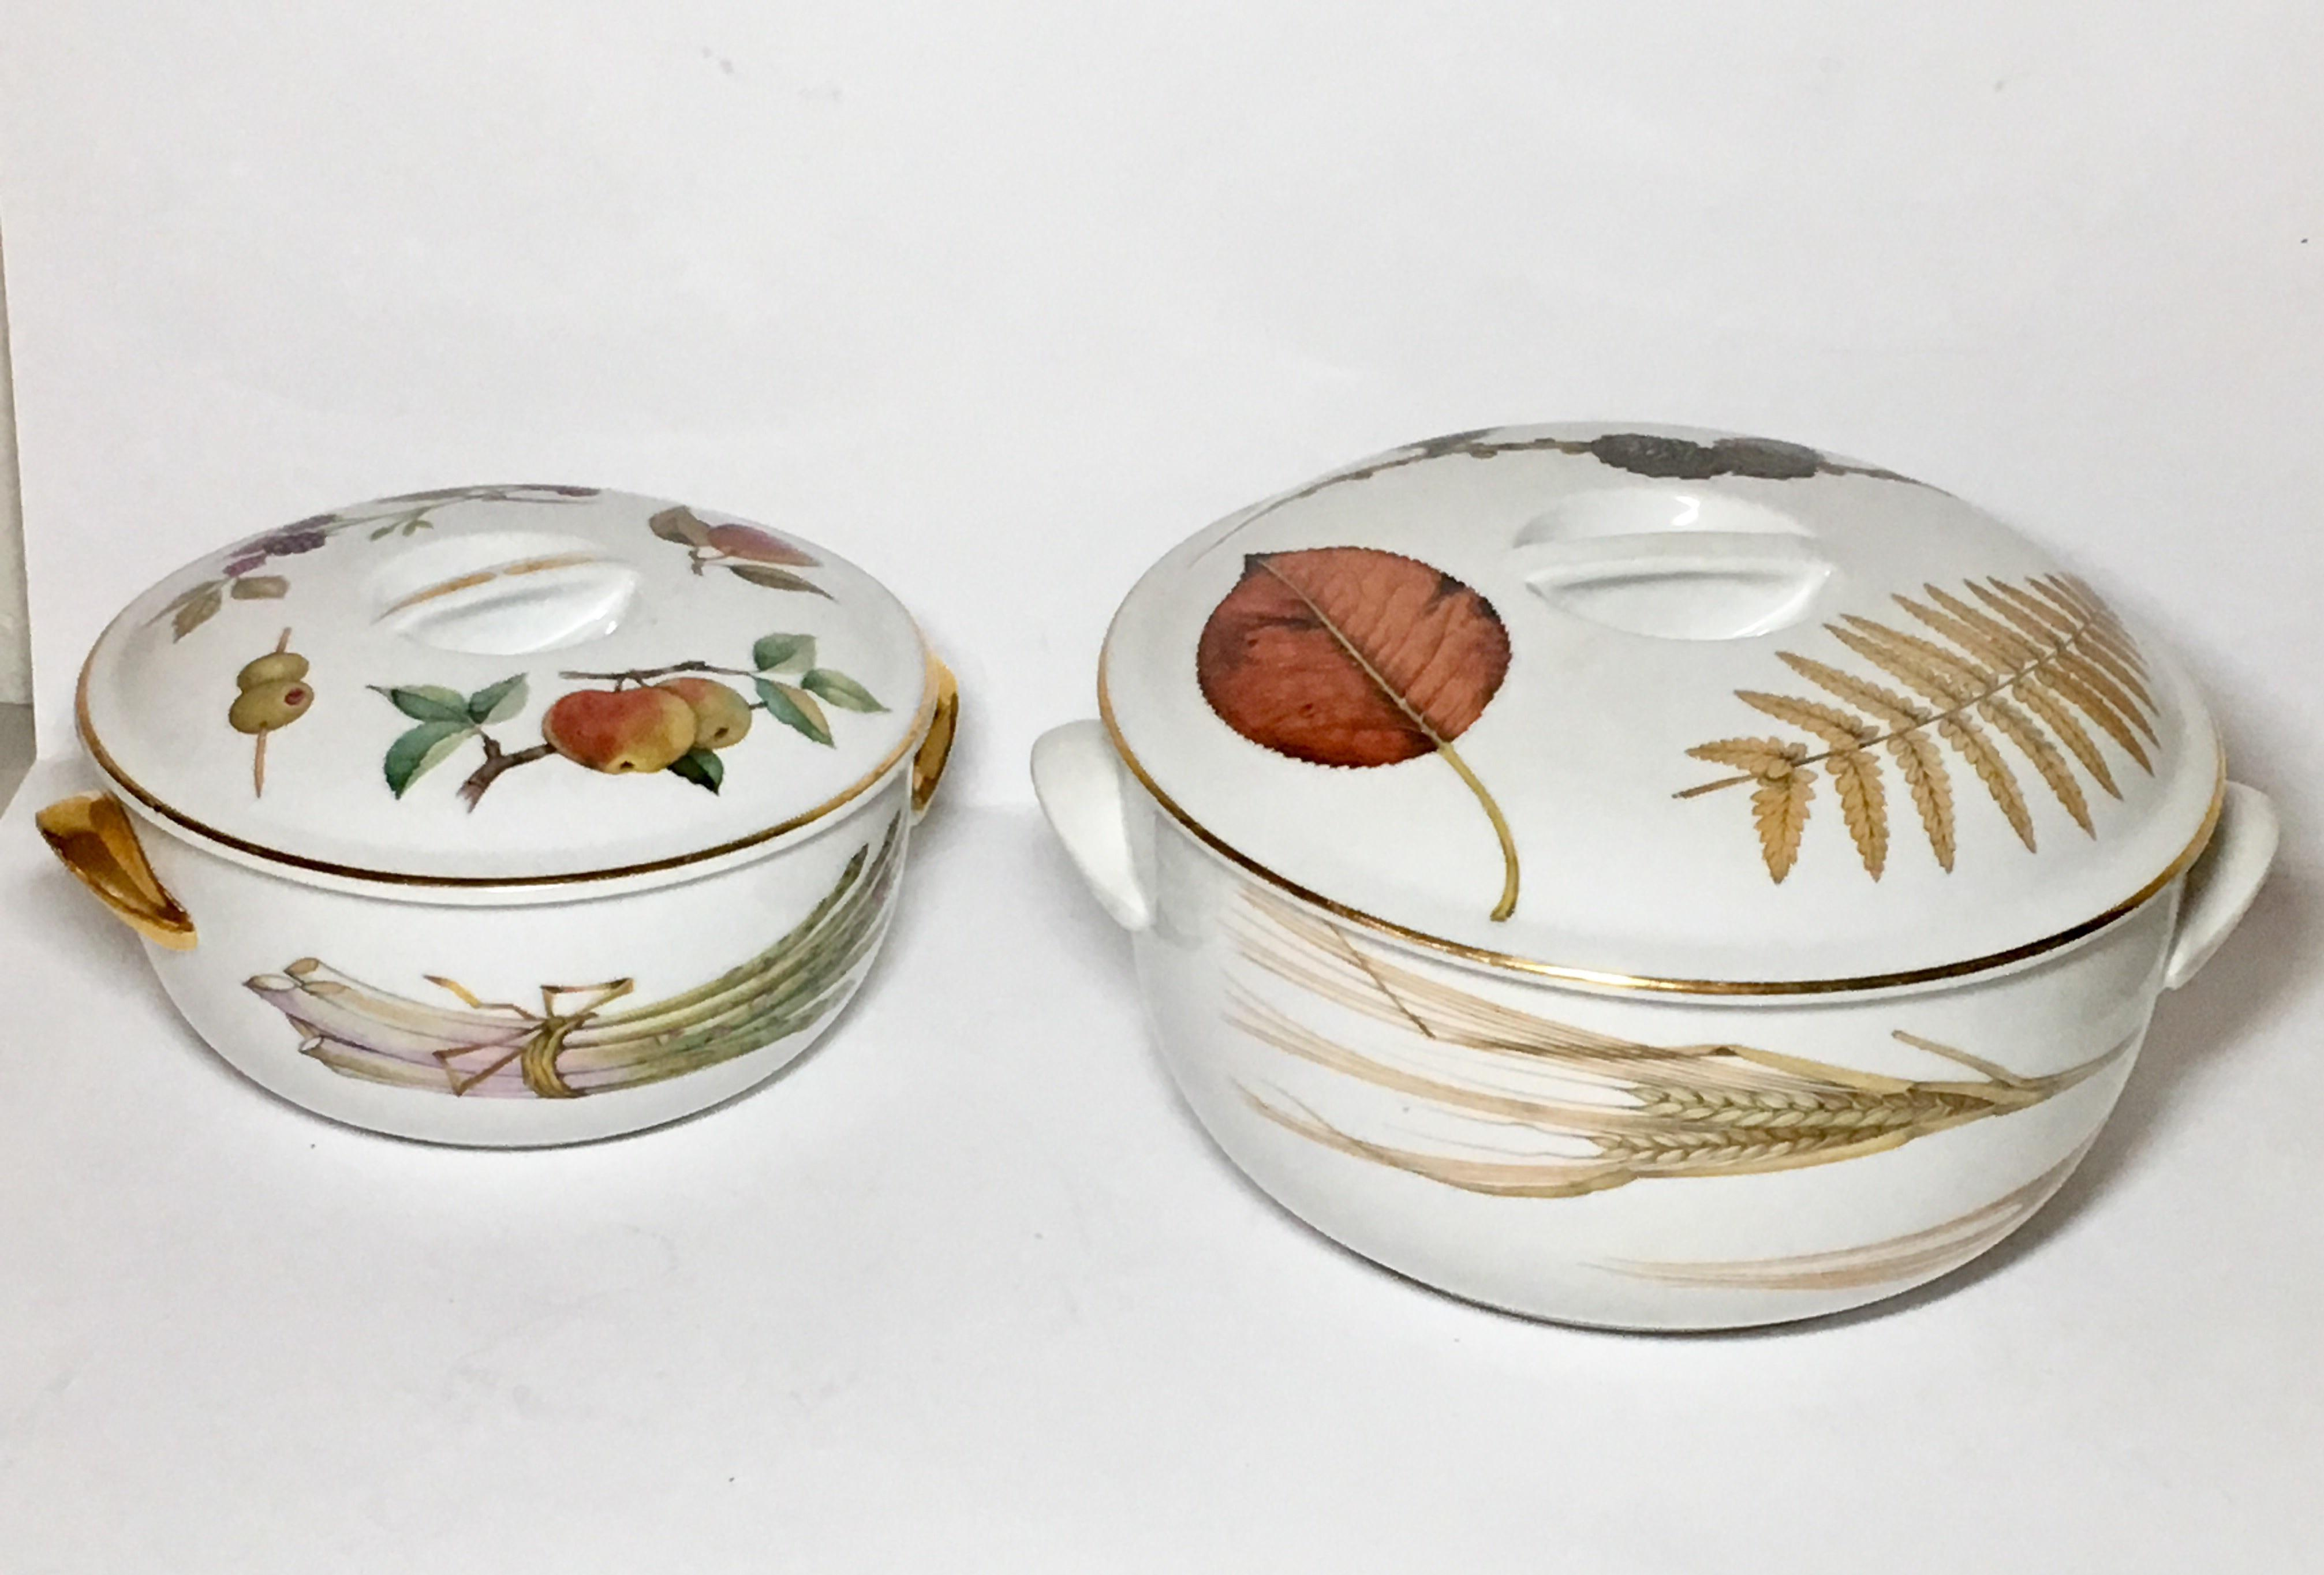 Royal Worcester Evesham Casseroles - A Pair - Image 2 of 5  sc 1 st  Chairish : royal worcester tableware - pezcame.com